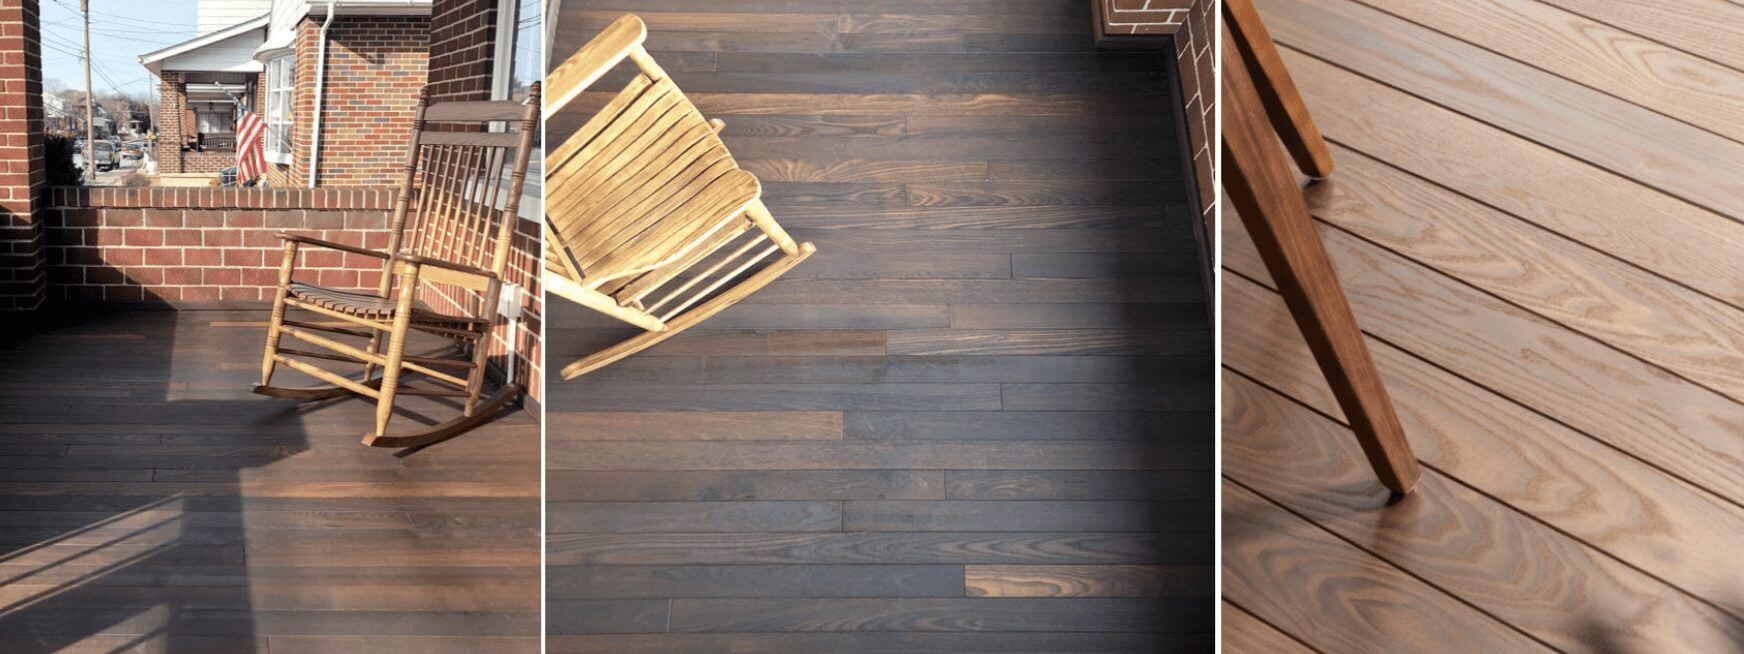 06 15 00.02 Thermally Modified Wood Decking (Spruce Wood)